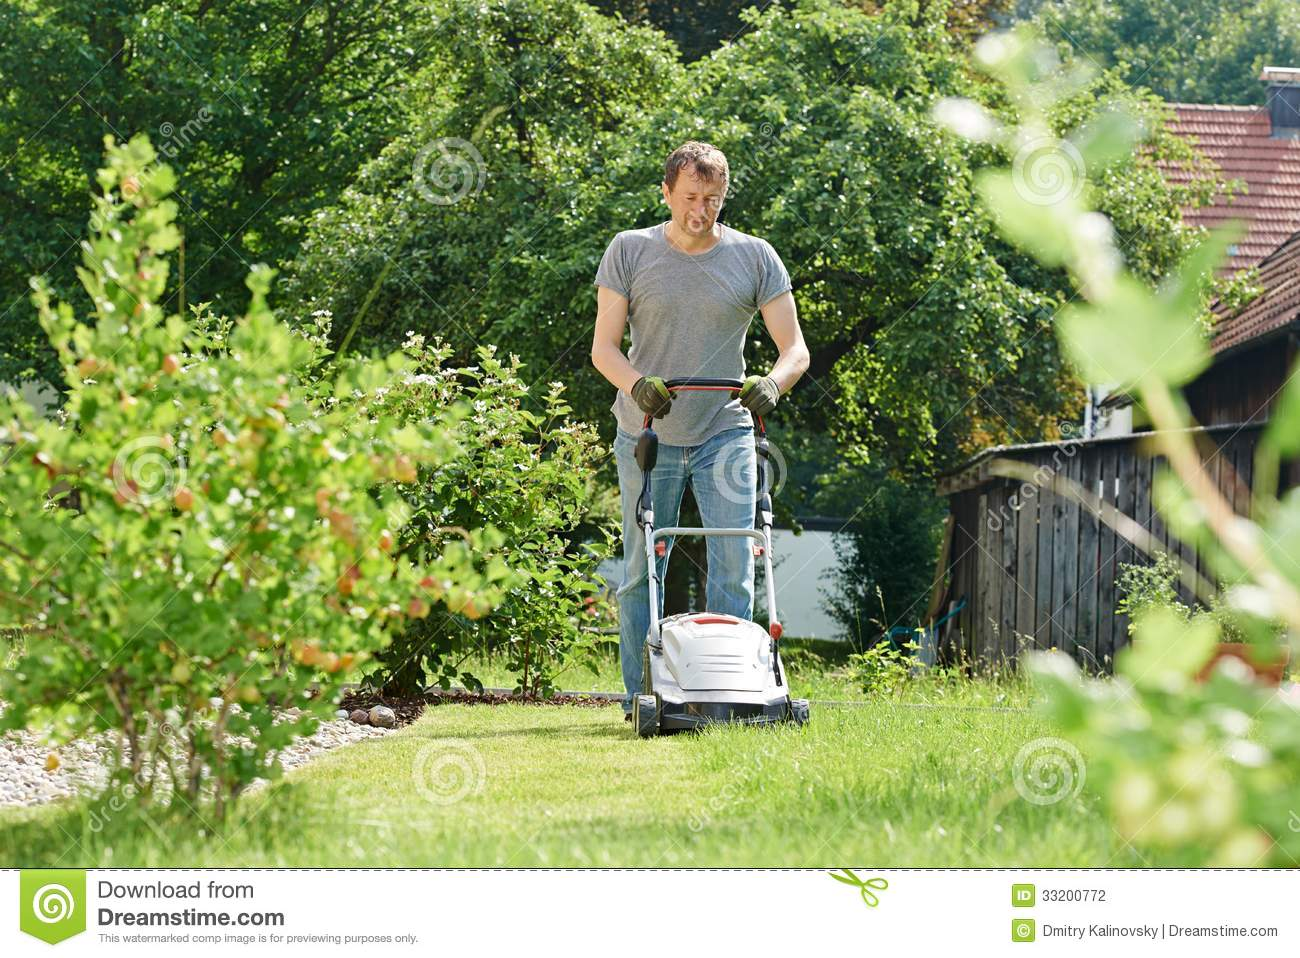 man mowing lawn backyard cutting grass his garden yard mower 33200772